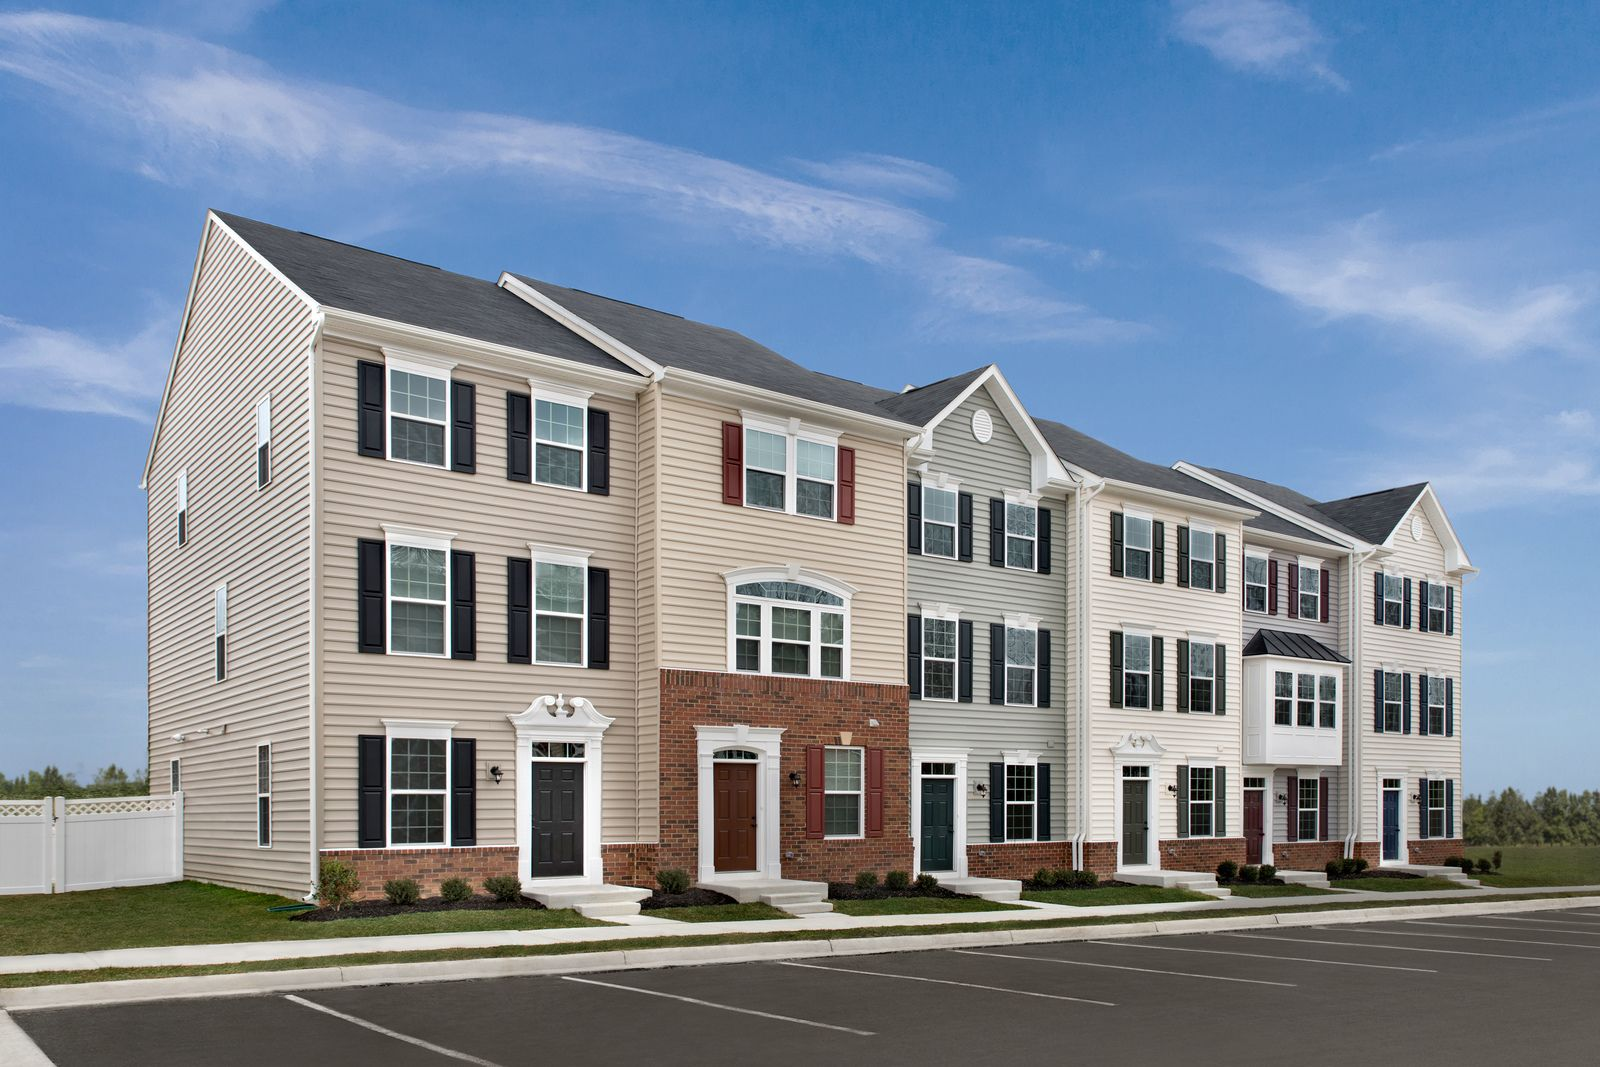 WELCOME HOME TO RAPPAHANNOCK LANDING:Stafford County's lowest priced community with backyards & amenities just minutes to I-95 Express Lanes, VRE & Downtown Fredericksburg, from the upper $200s!Schedule your visit today!